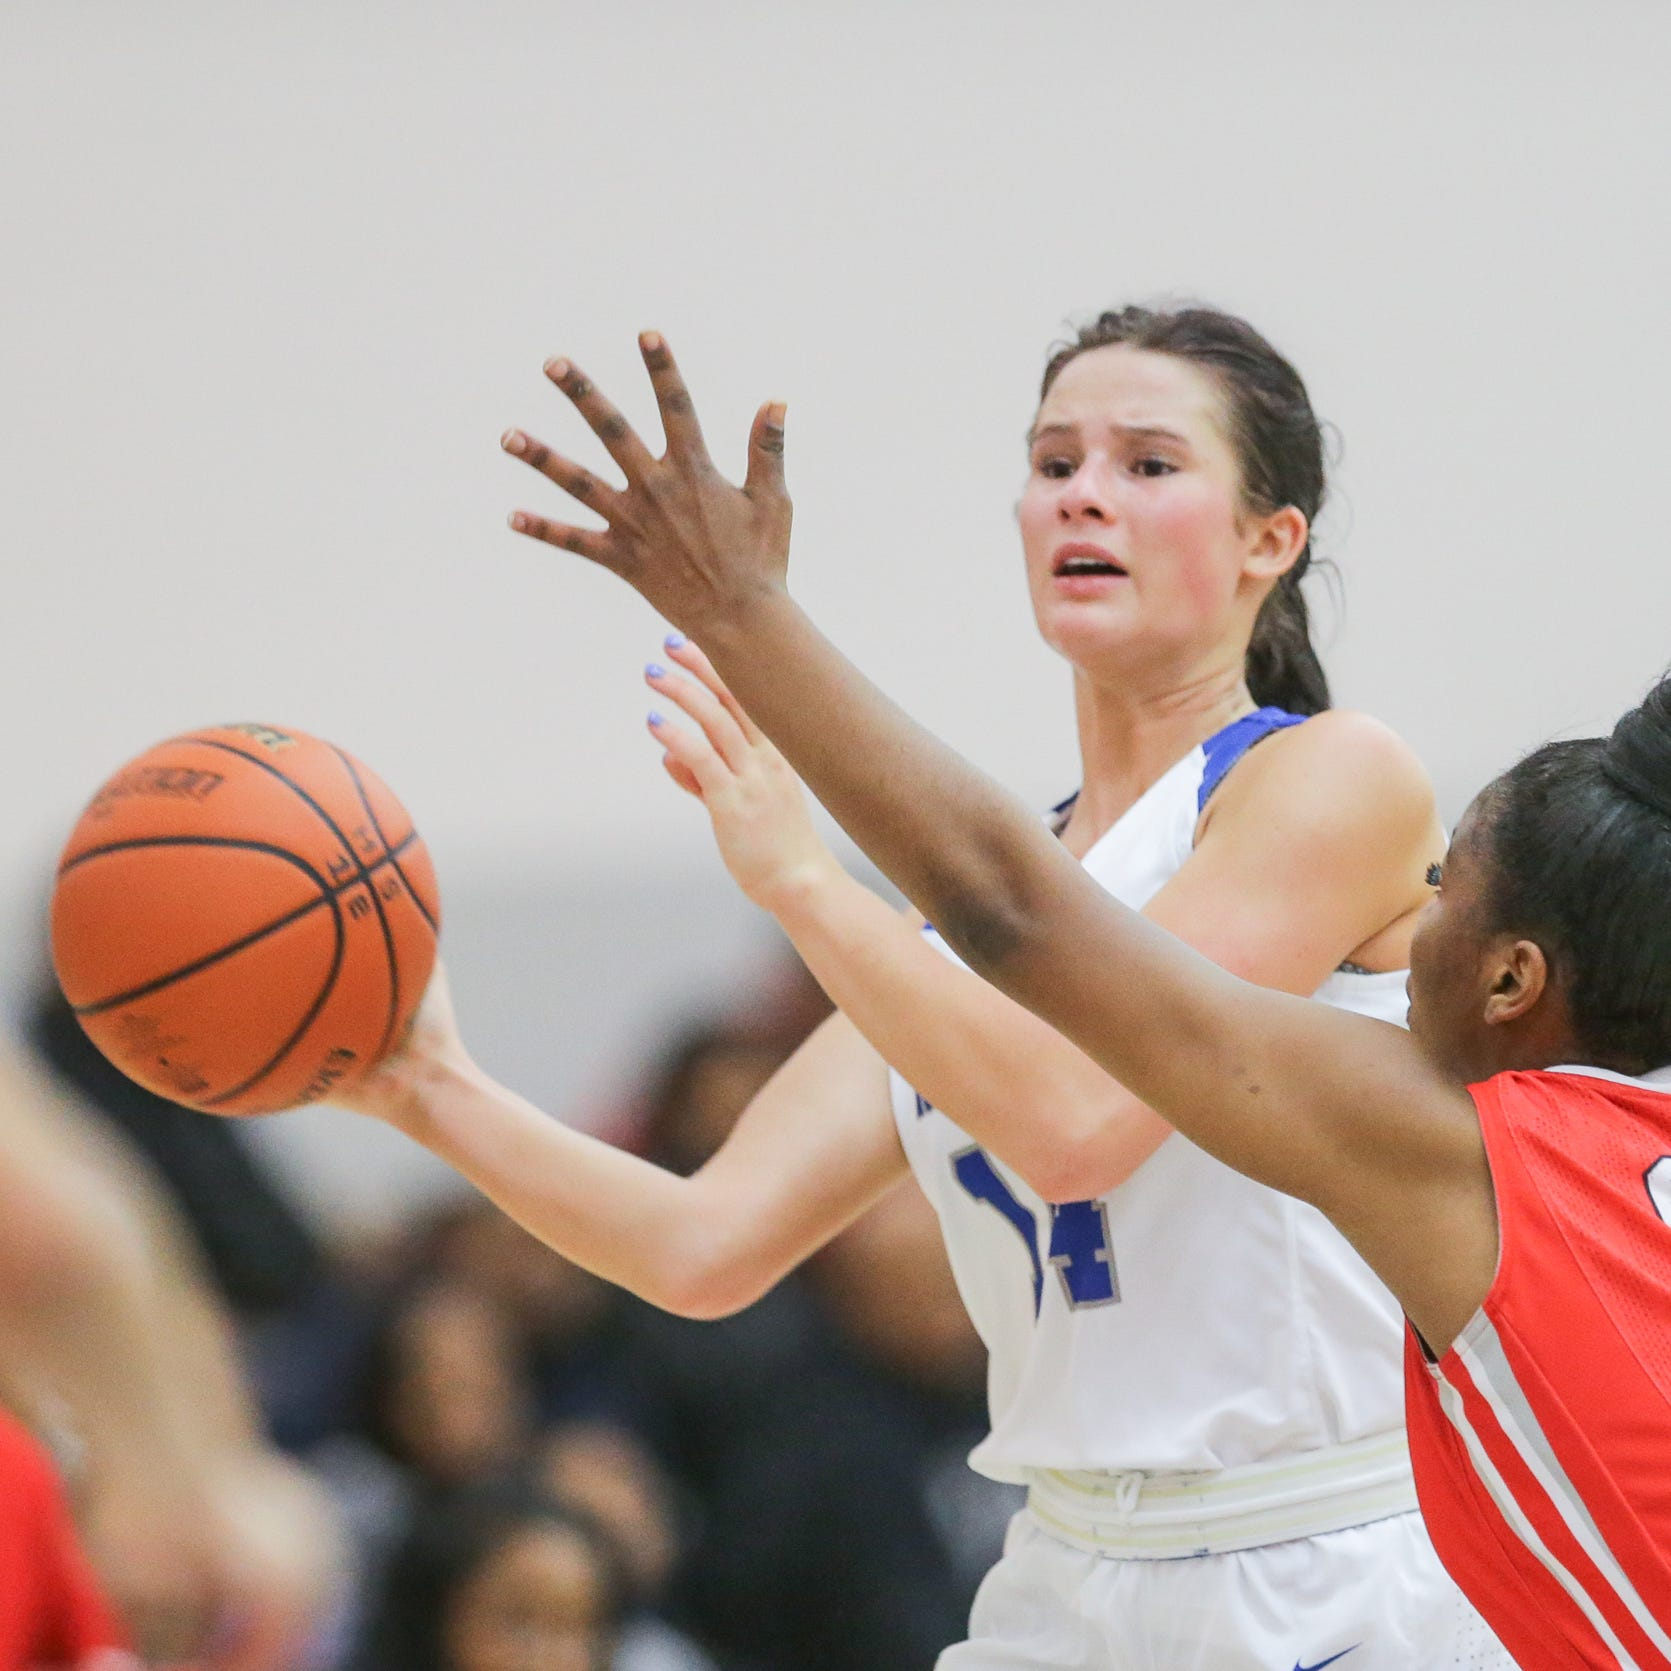 HSE player's grandfather dies from heart attack outside gymnasium, team rallies behind her